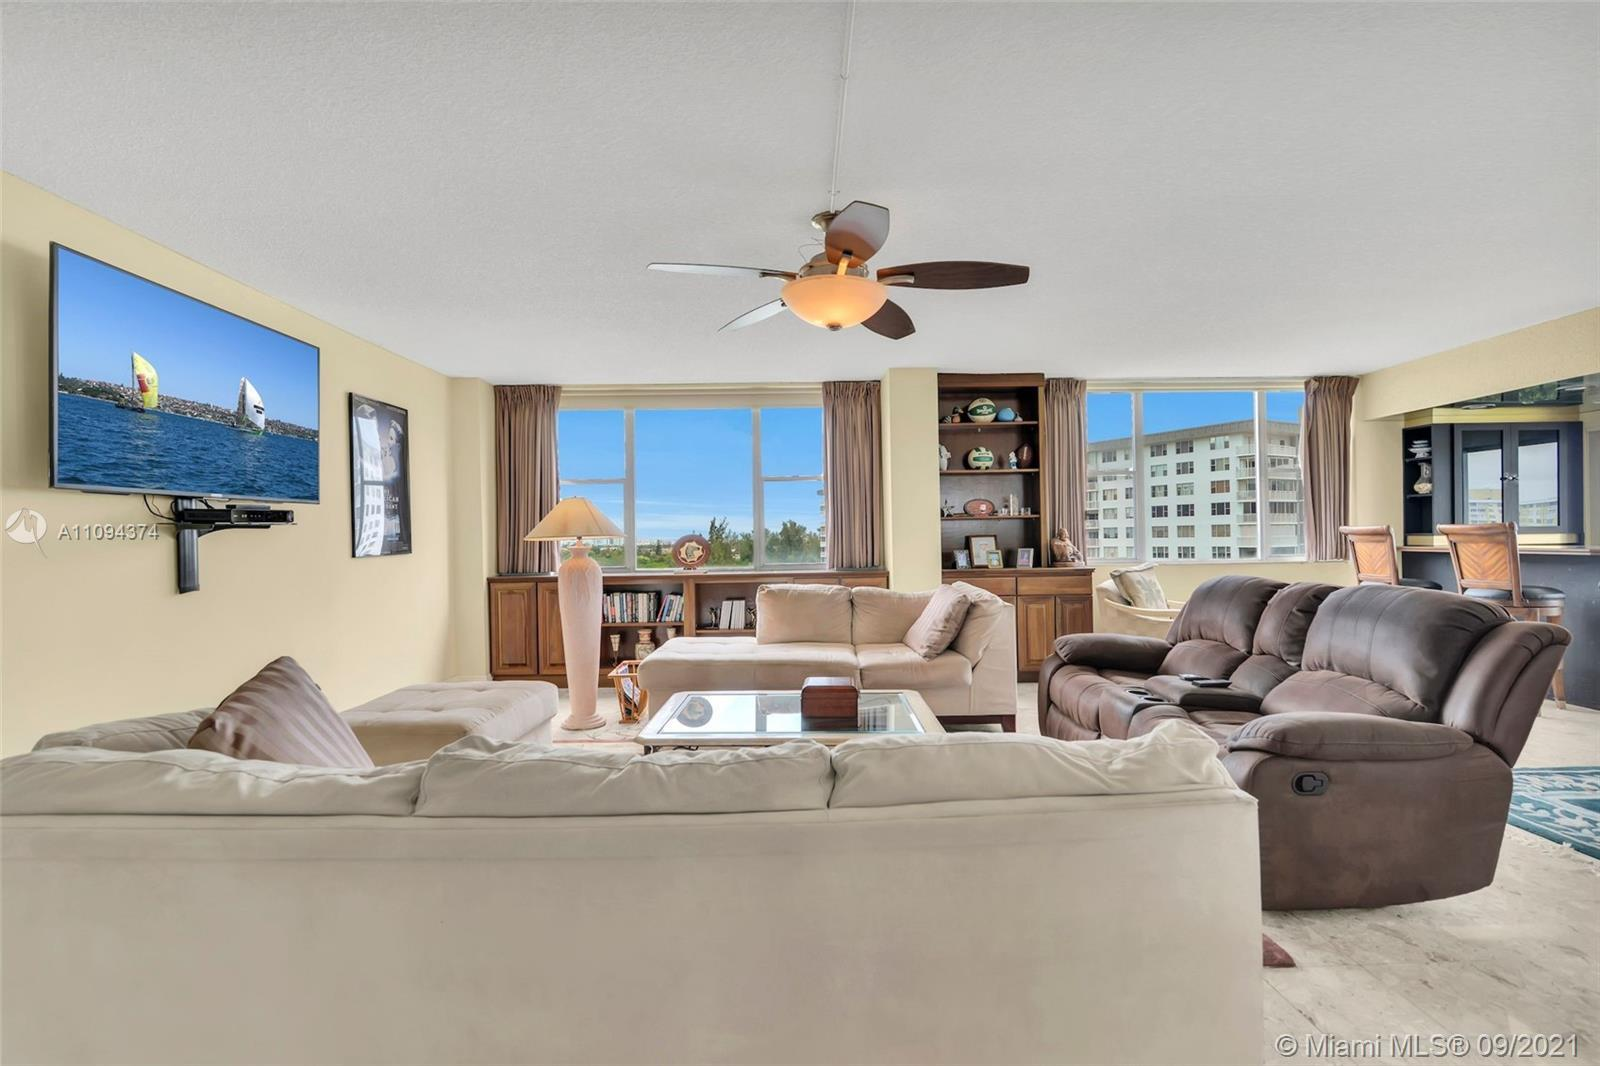 """When I walk into this amazing condo the song """"I Can See for Miles & Miles"""" comes to mind. The view f"""